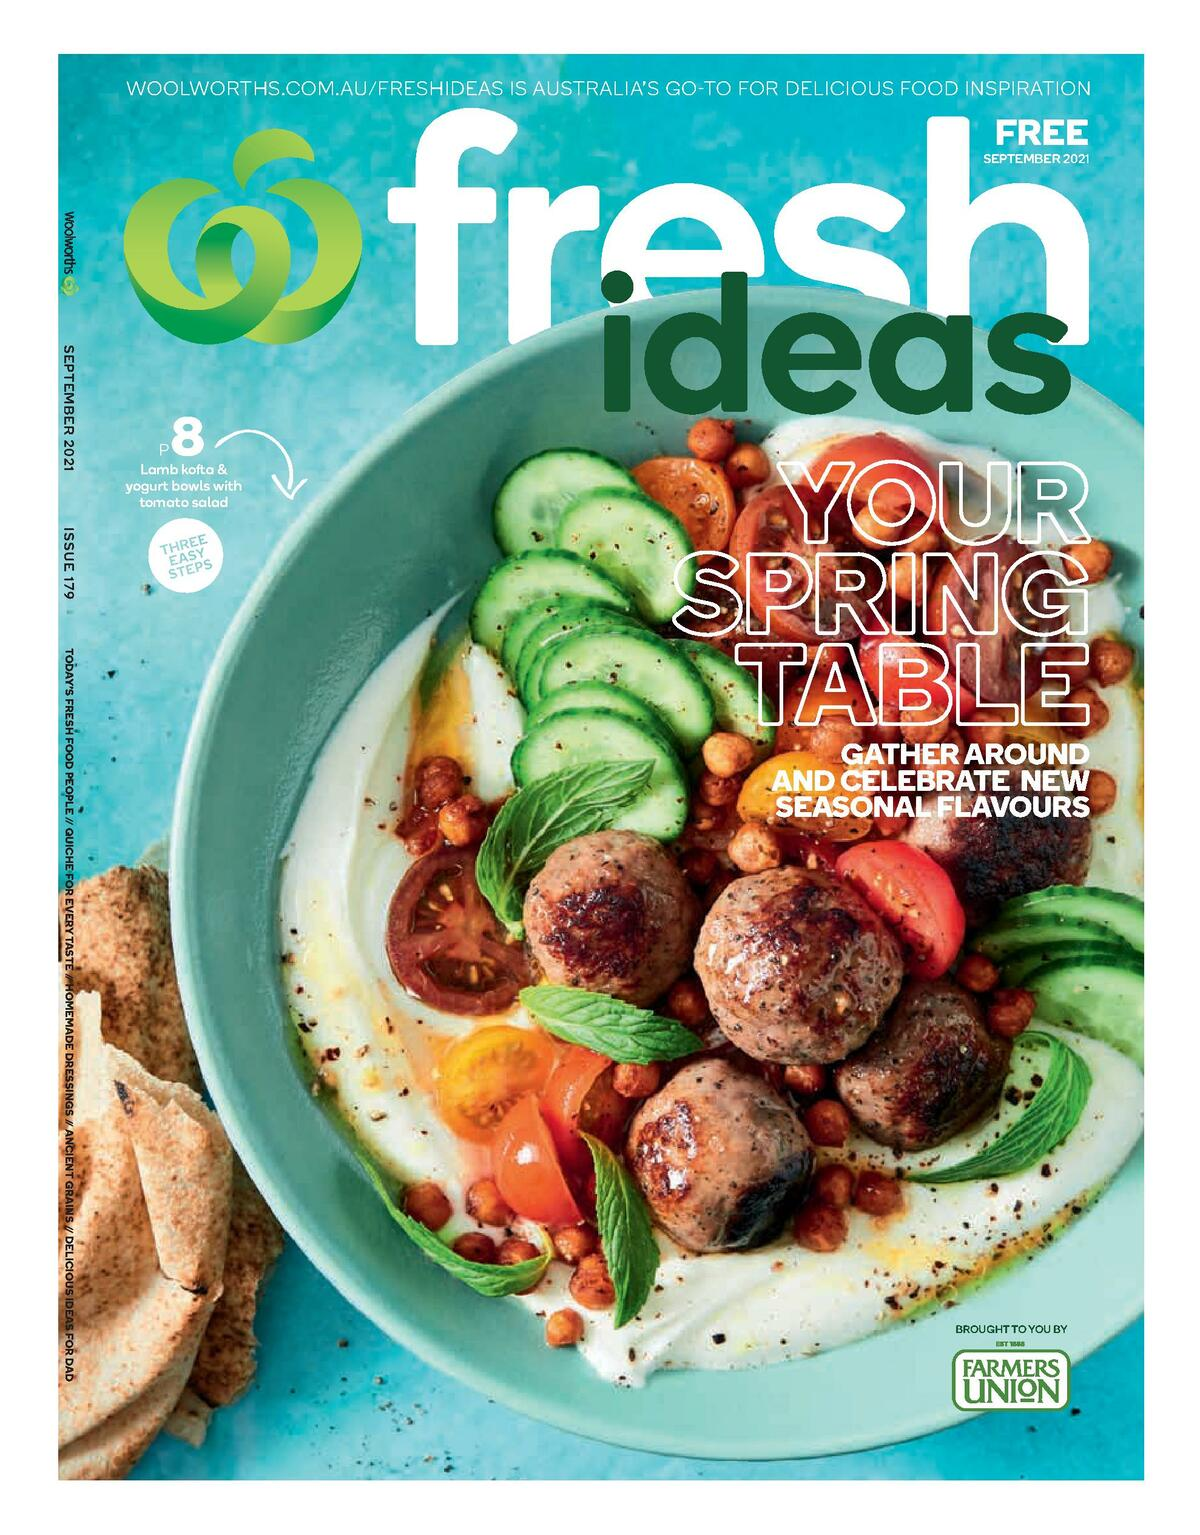 Woolworths Magazine September Catalogues from September 1